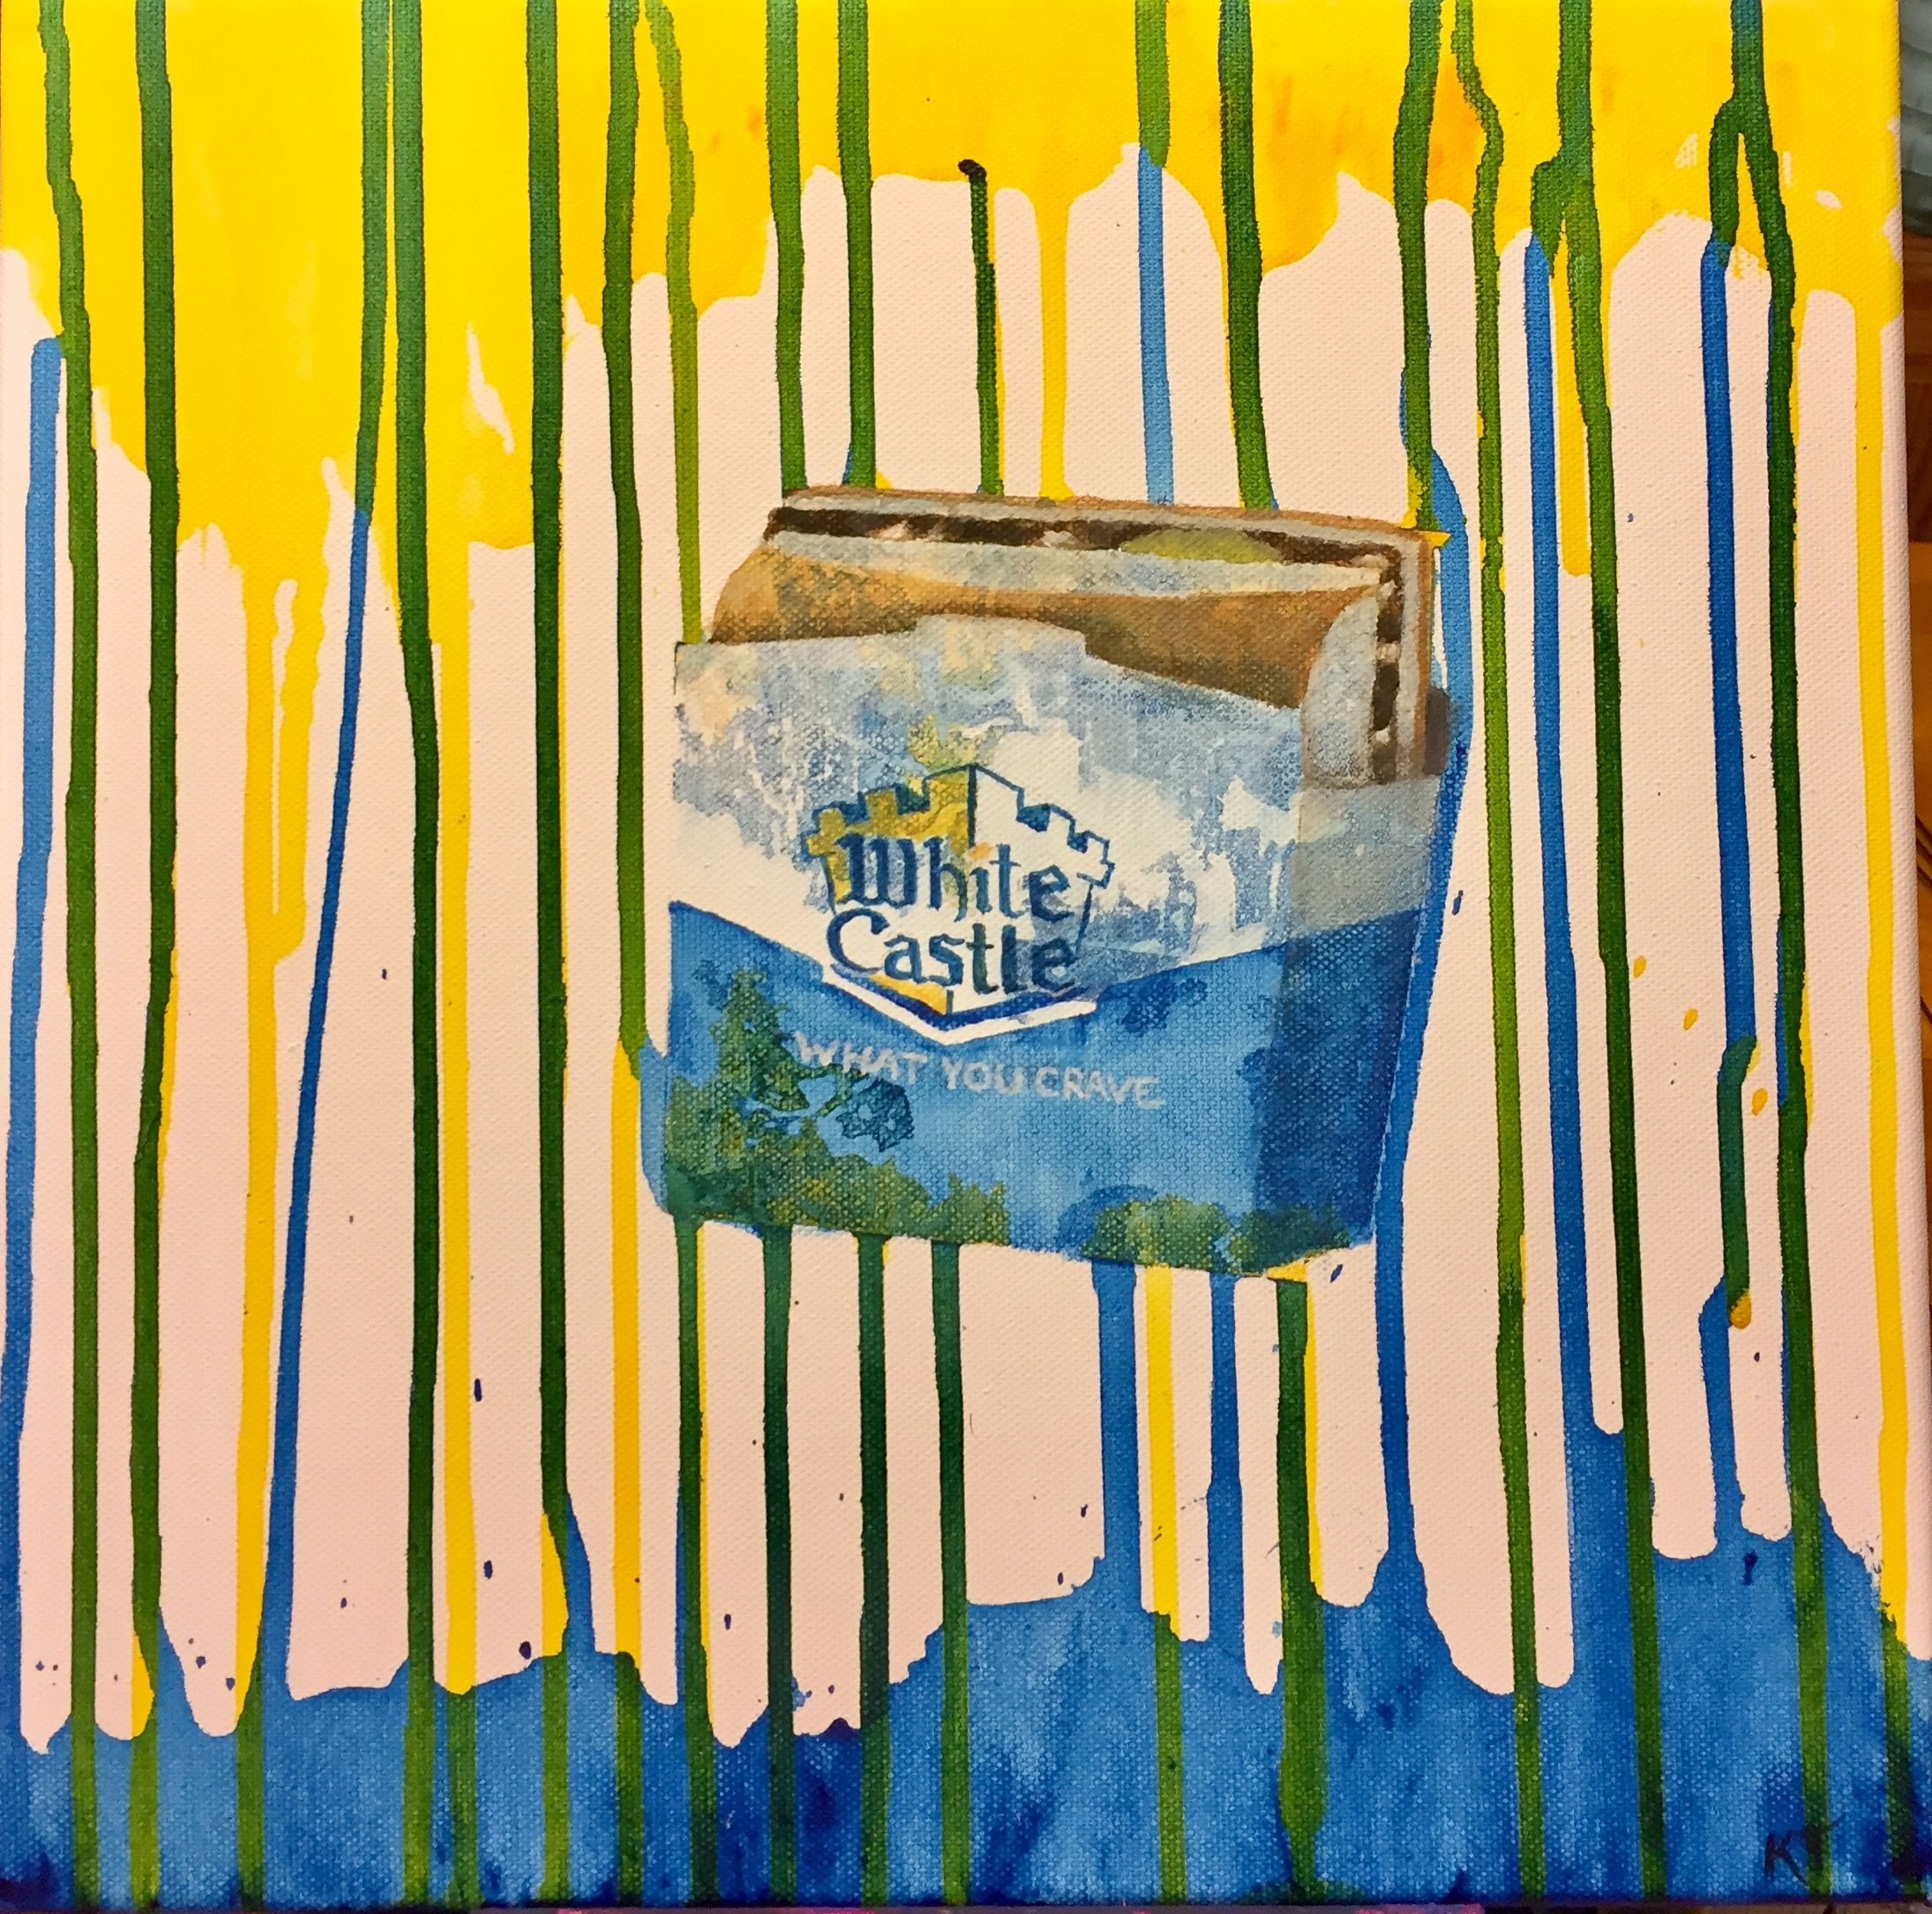 White Castle burger pop art canvas acrylic painting by Katie Tucker ...